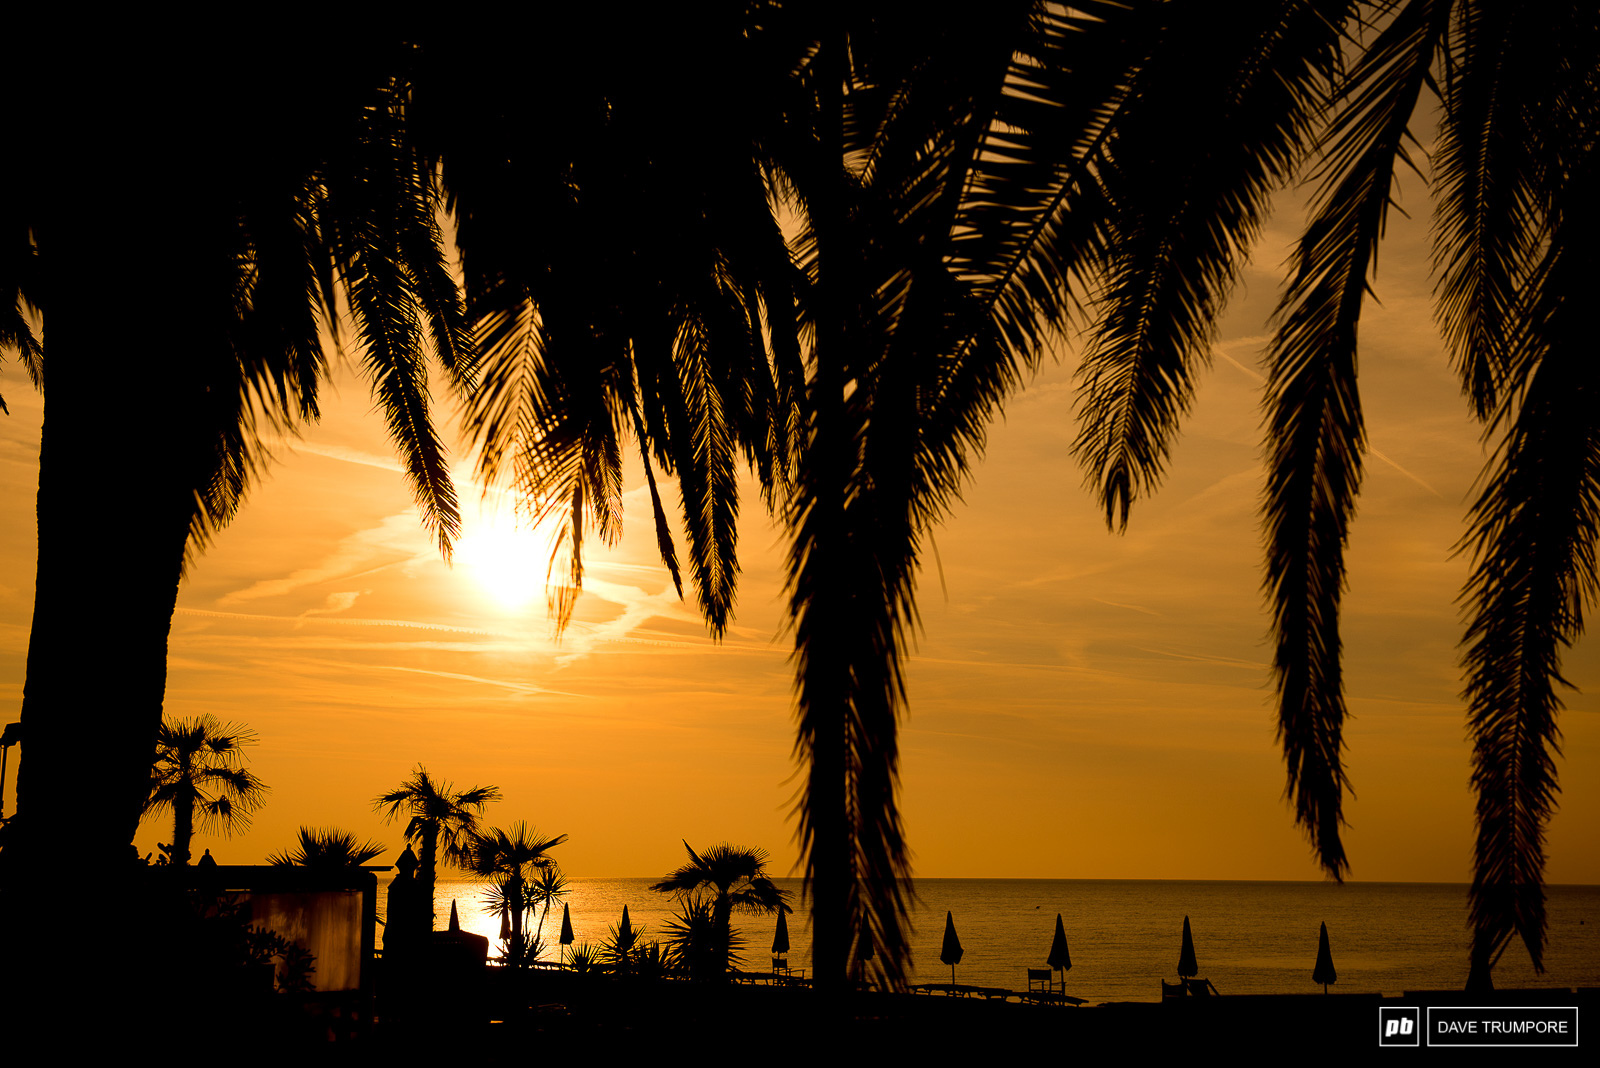 Lots of sun on the horizon this week for racers in Finale Ligure